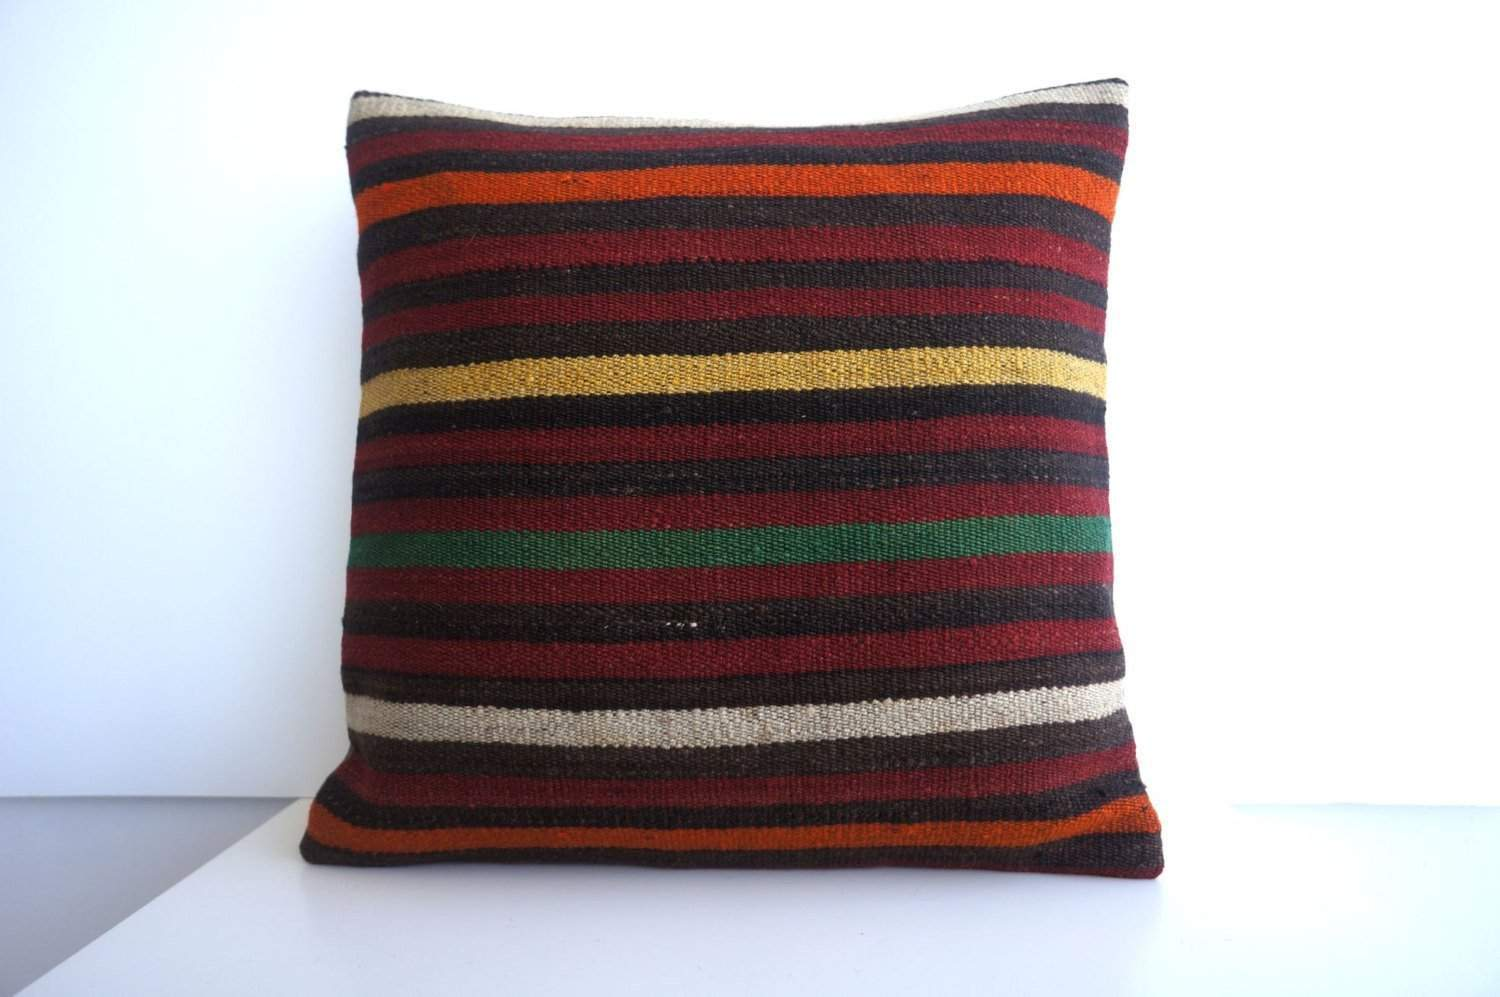 CLEARANCE 16x16 Vintage Hand Woven Turkish Kilim Pillow  - Old  Kilim Cushion 179, black ,orange,red,striped - kilimpillowstore  - 1